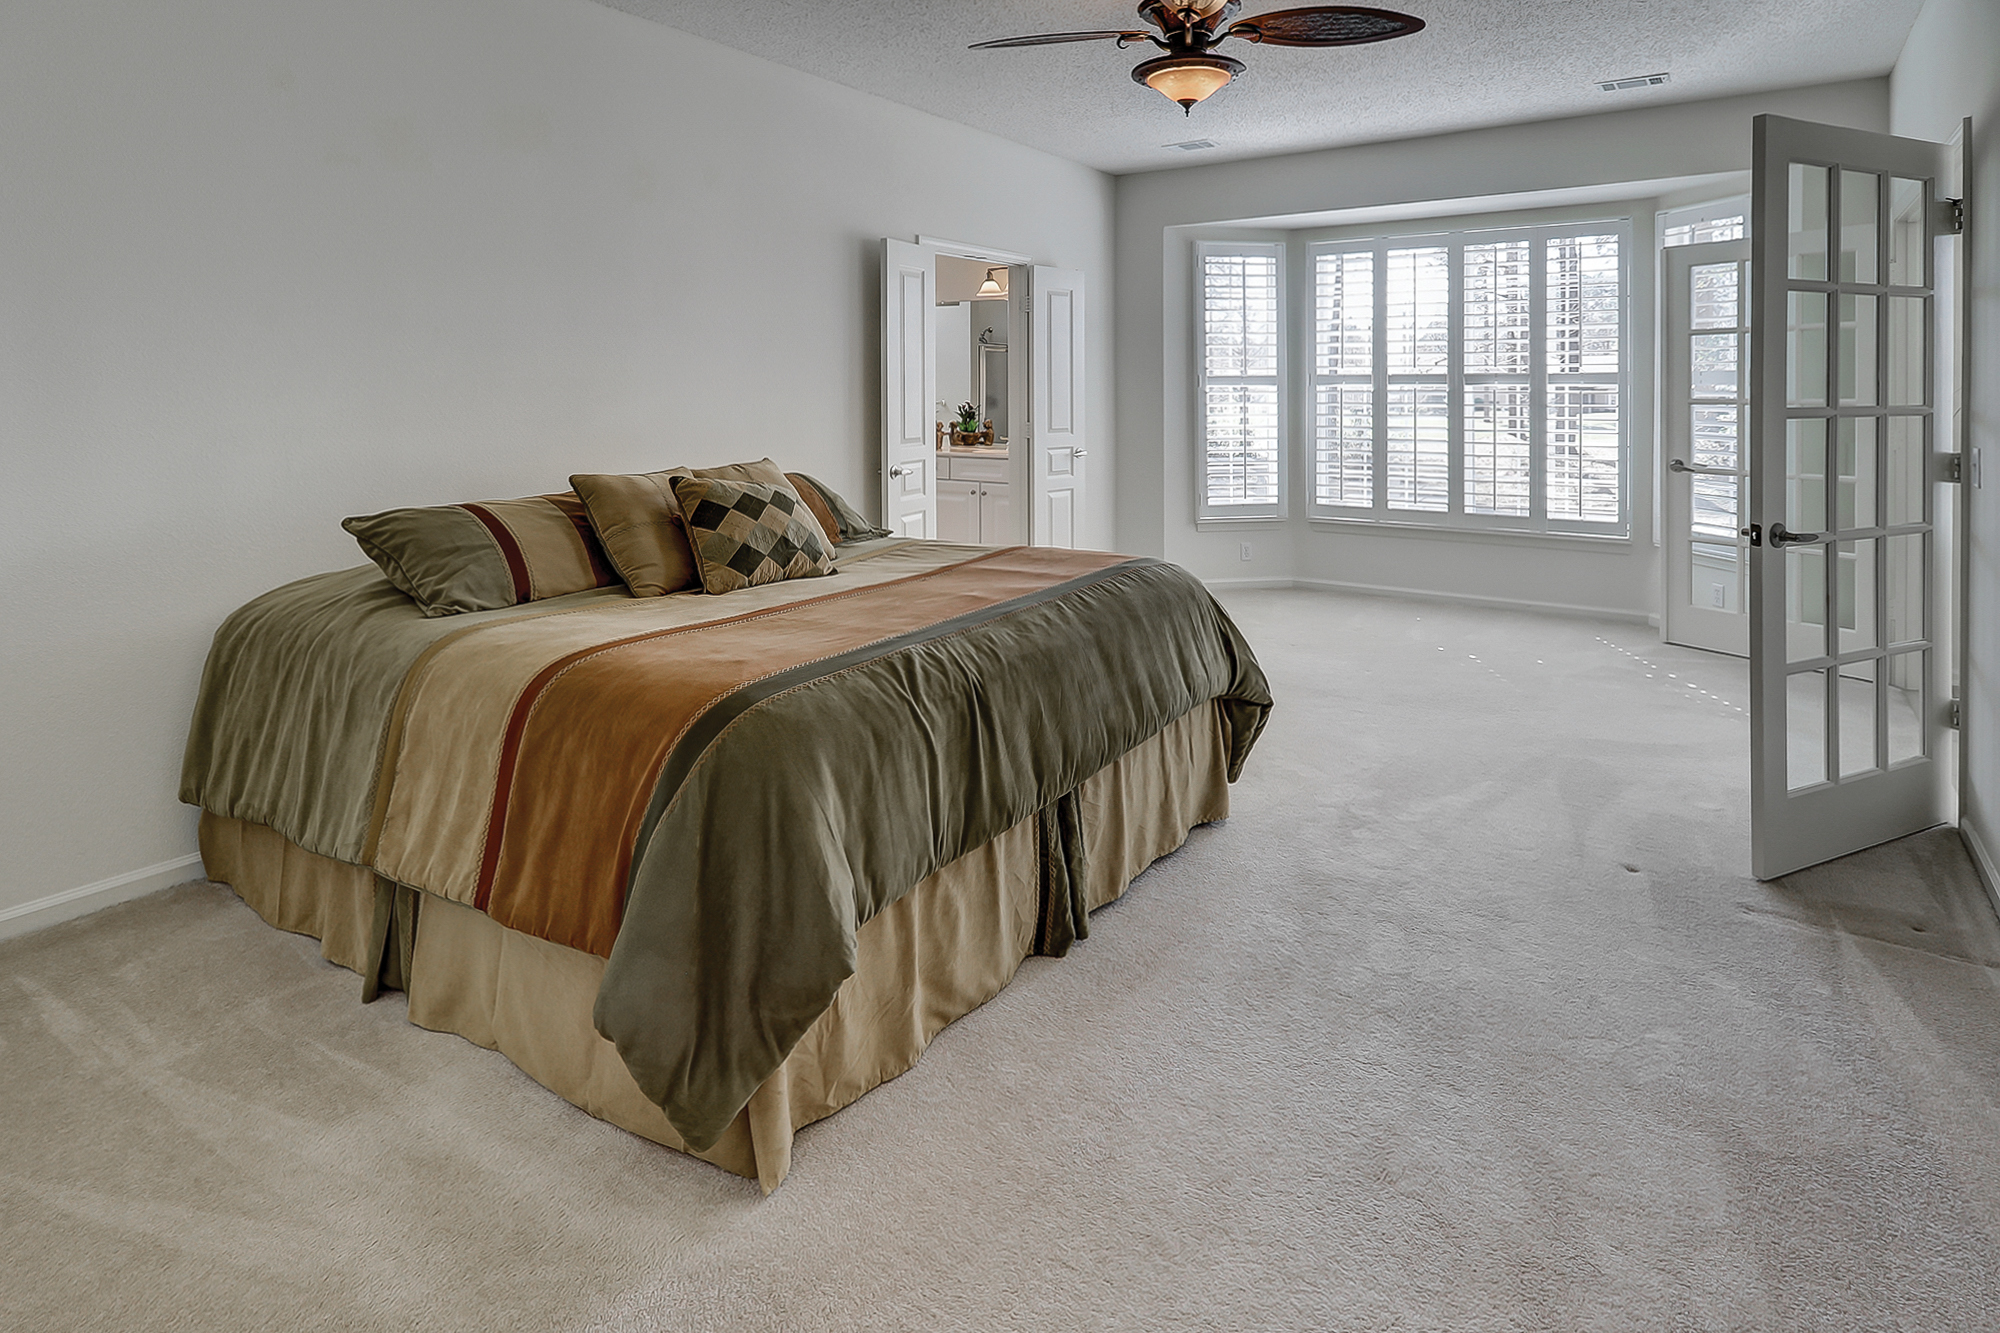 Luxury Master Suite in Sun City Hilton Head